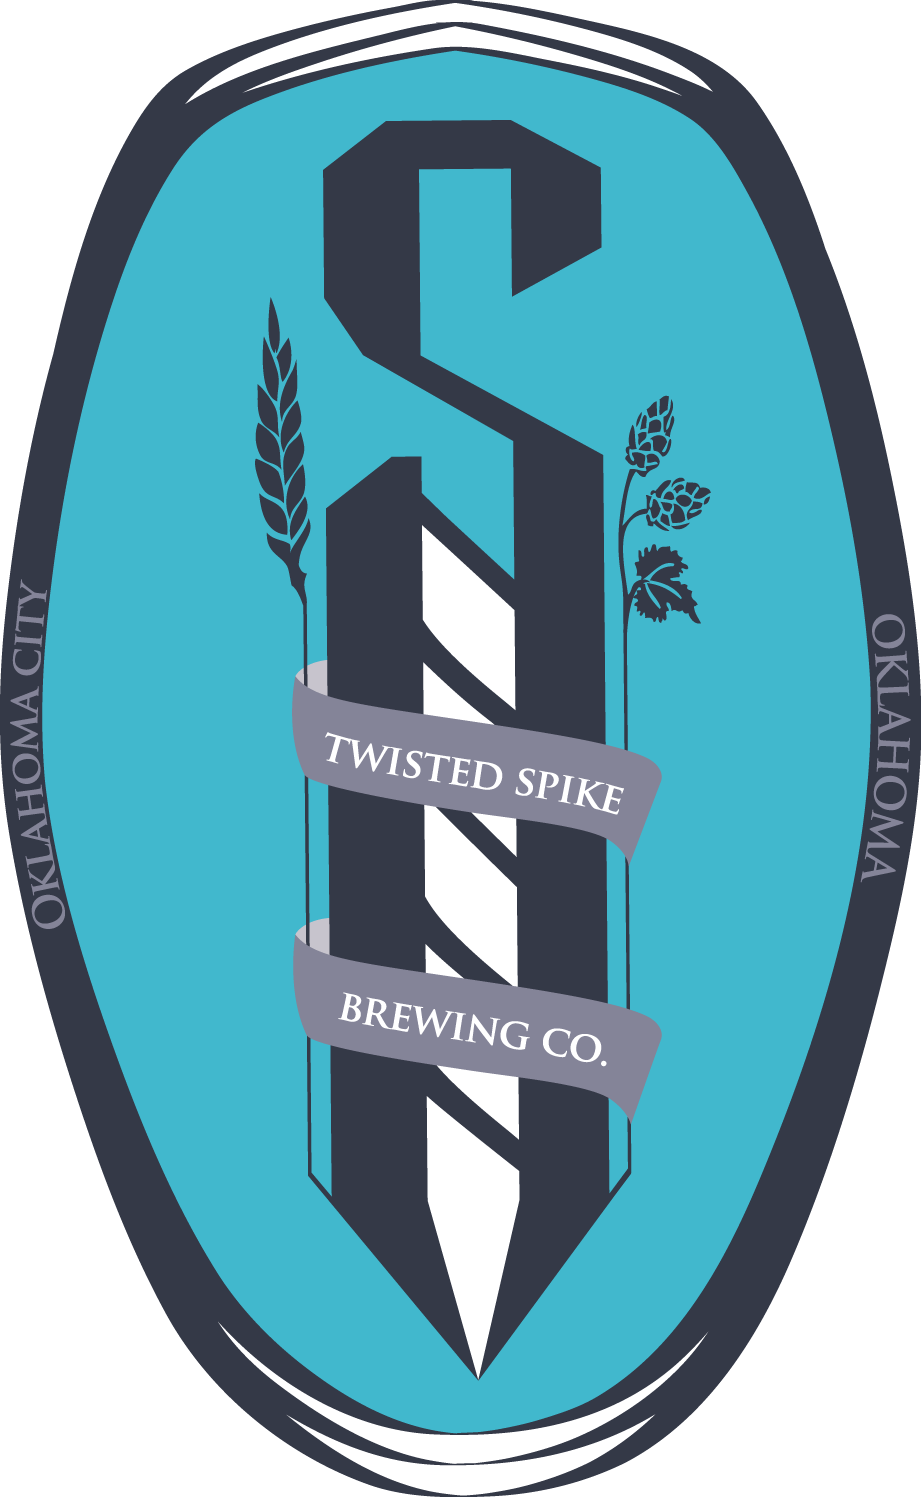 Twisted Spike Brewing Co. Logo